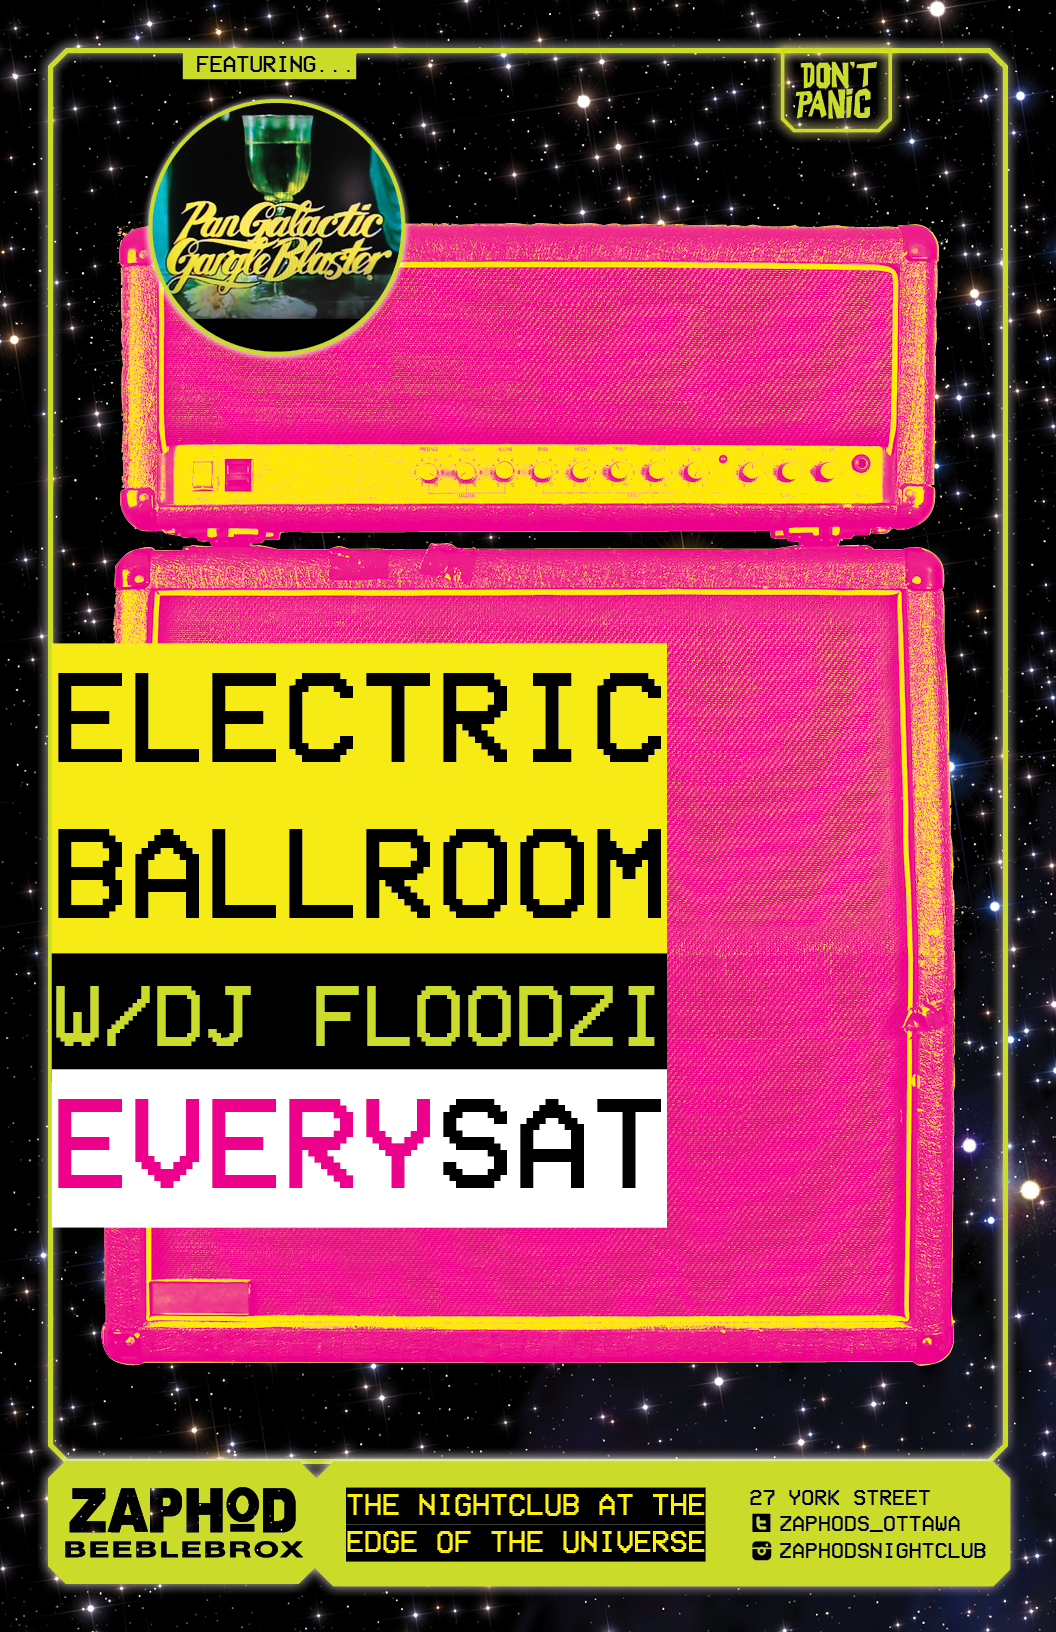 electricballroom-screen_final